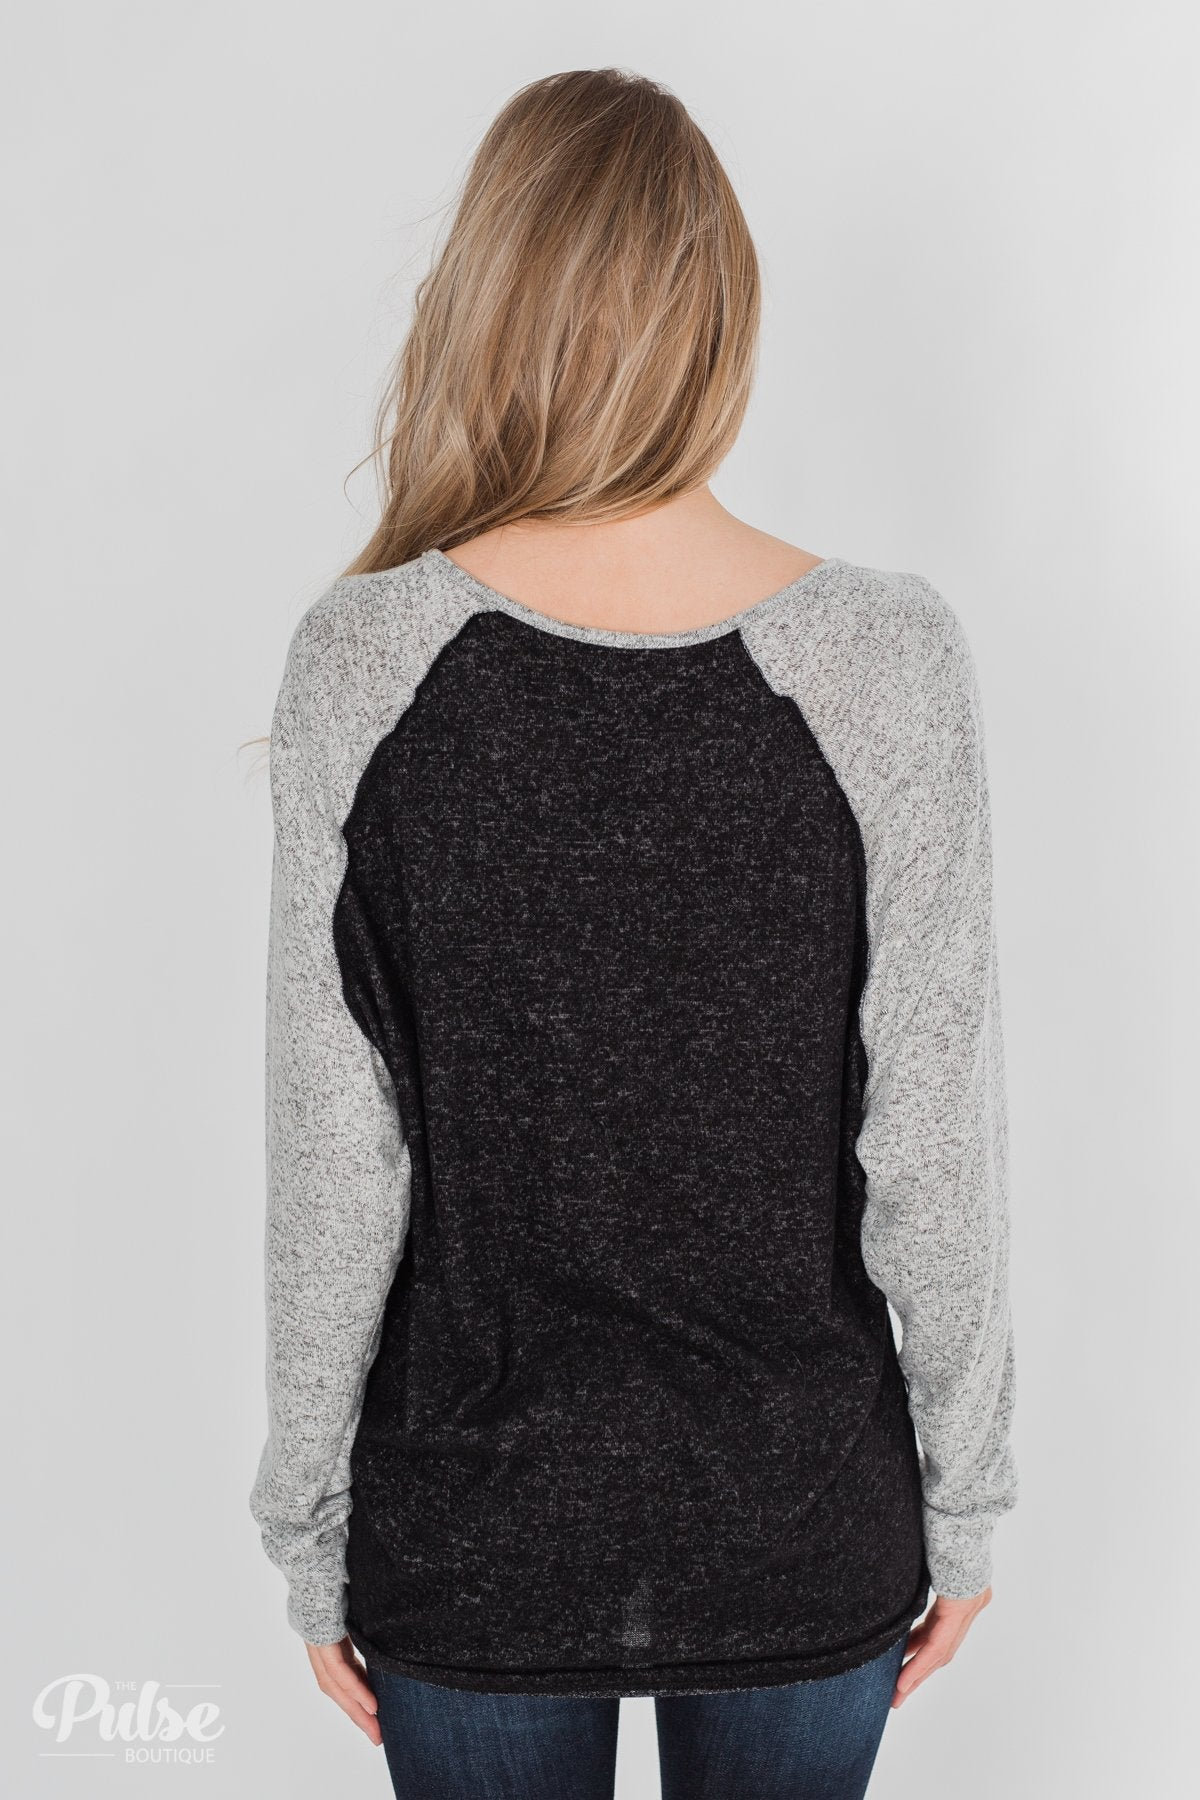 Along the Way Raglan Top - Black & Heather Grey